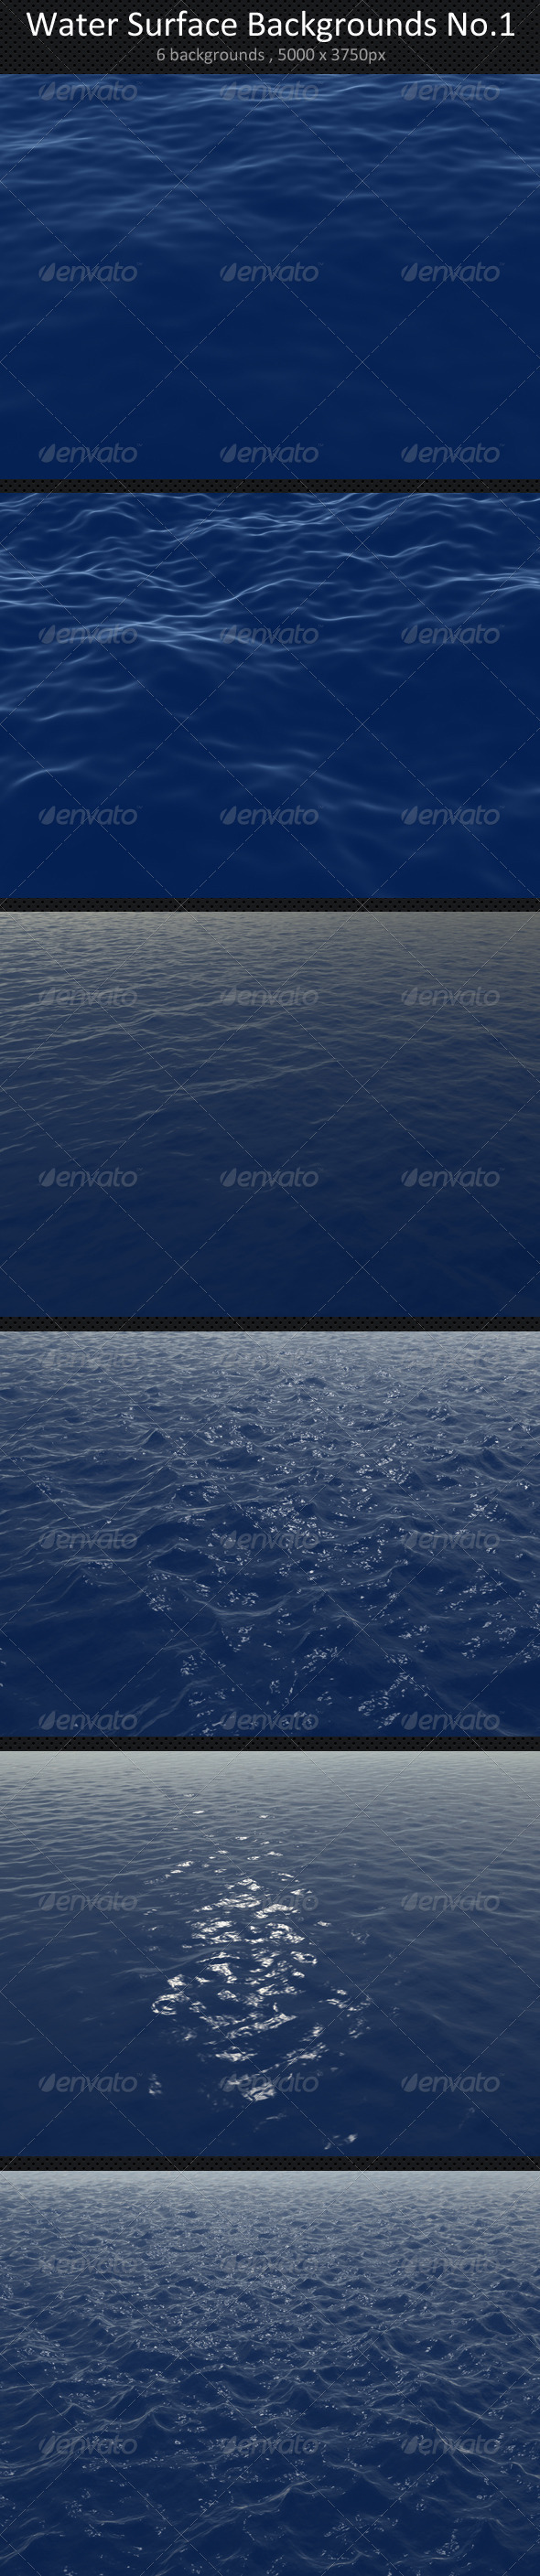 Water Surface Backgrounds No.1 - 3D Backgrounds